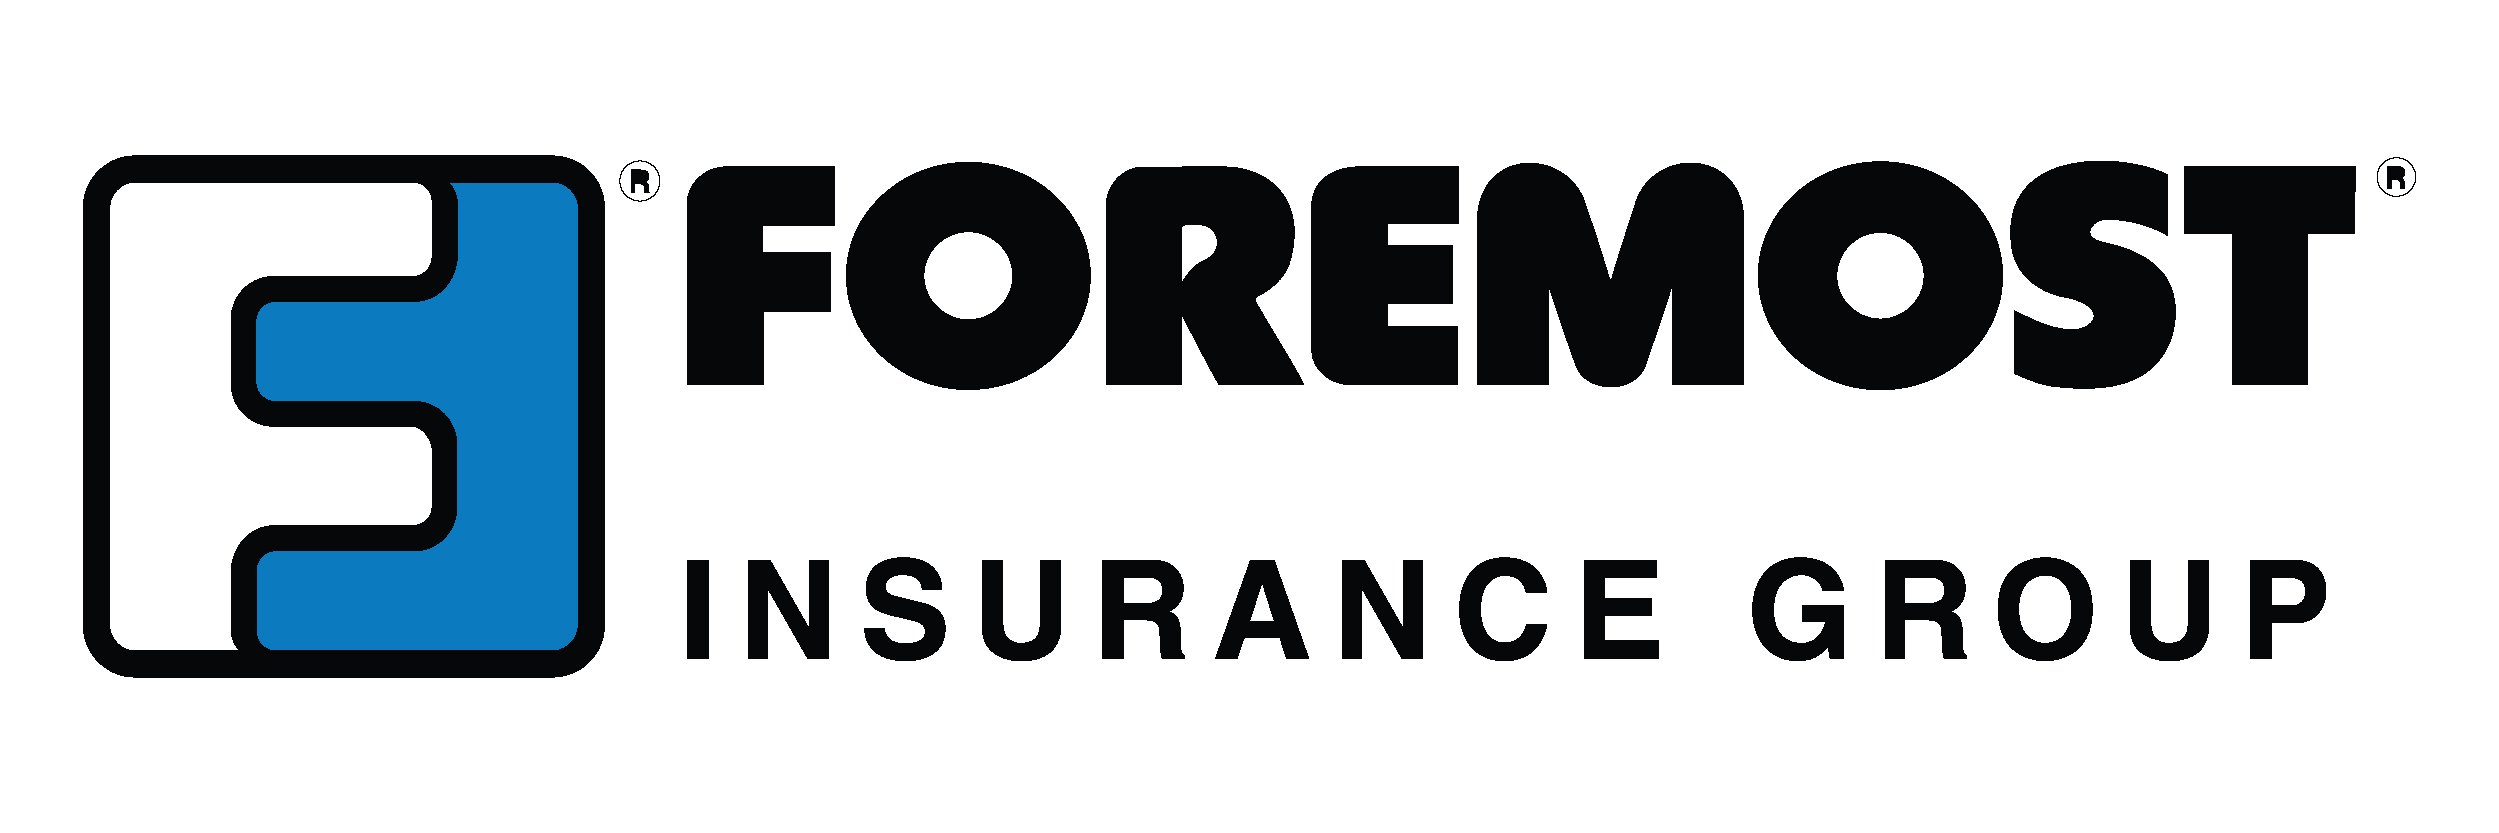 Foremost Rebrands As Bristol West Professional Insurance Agents